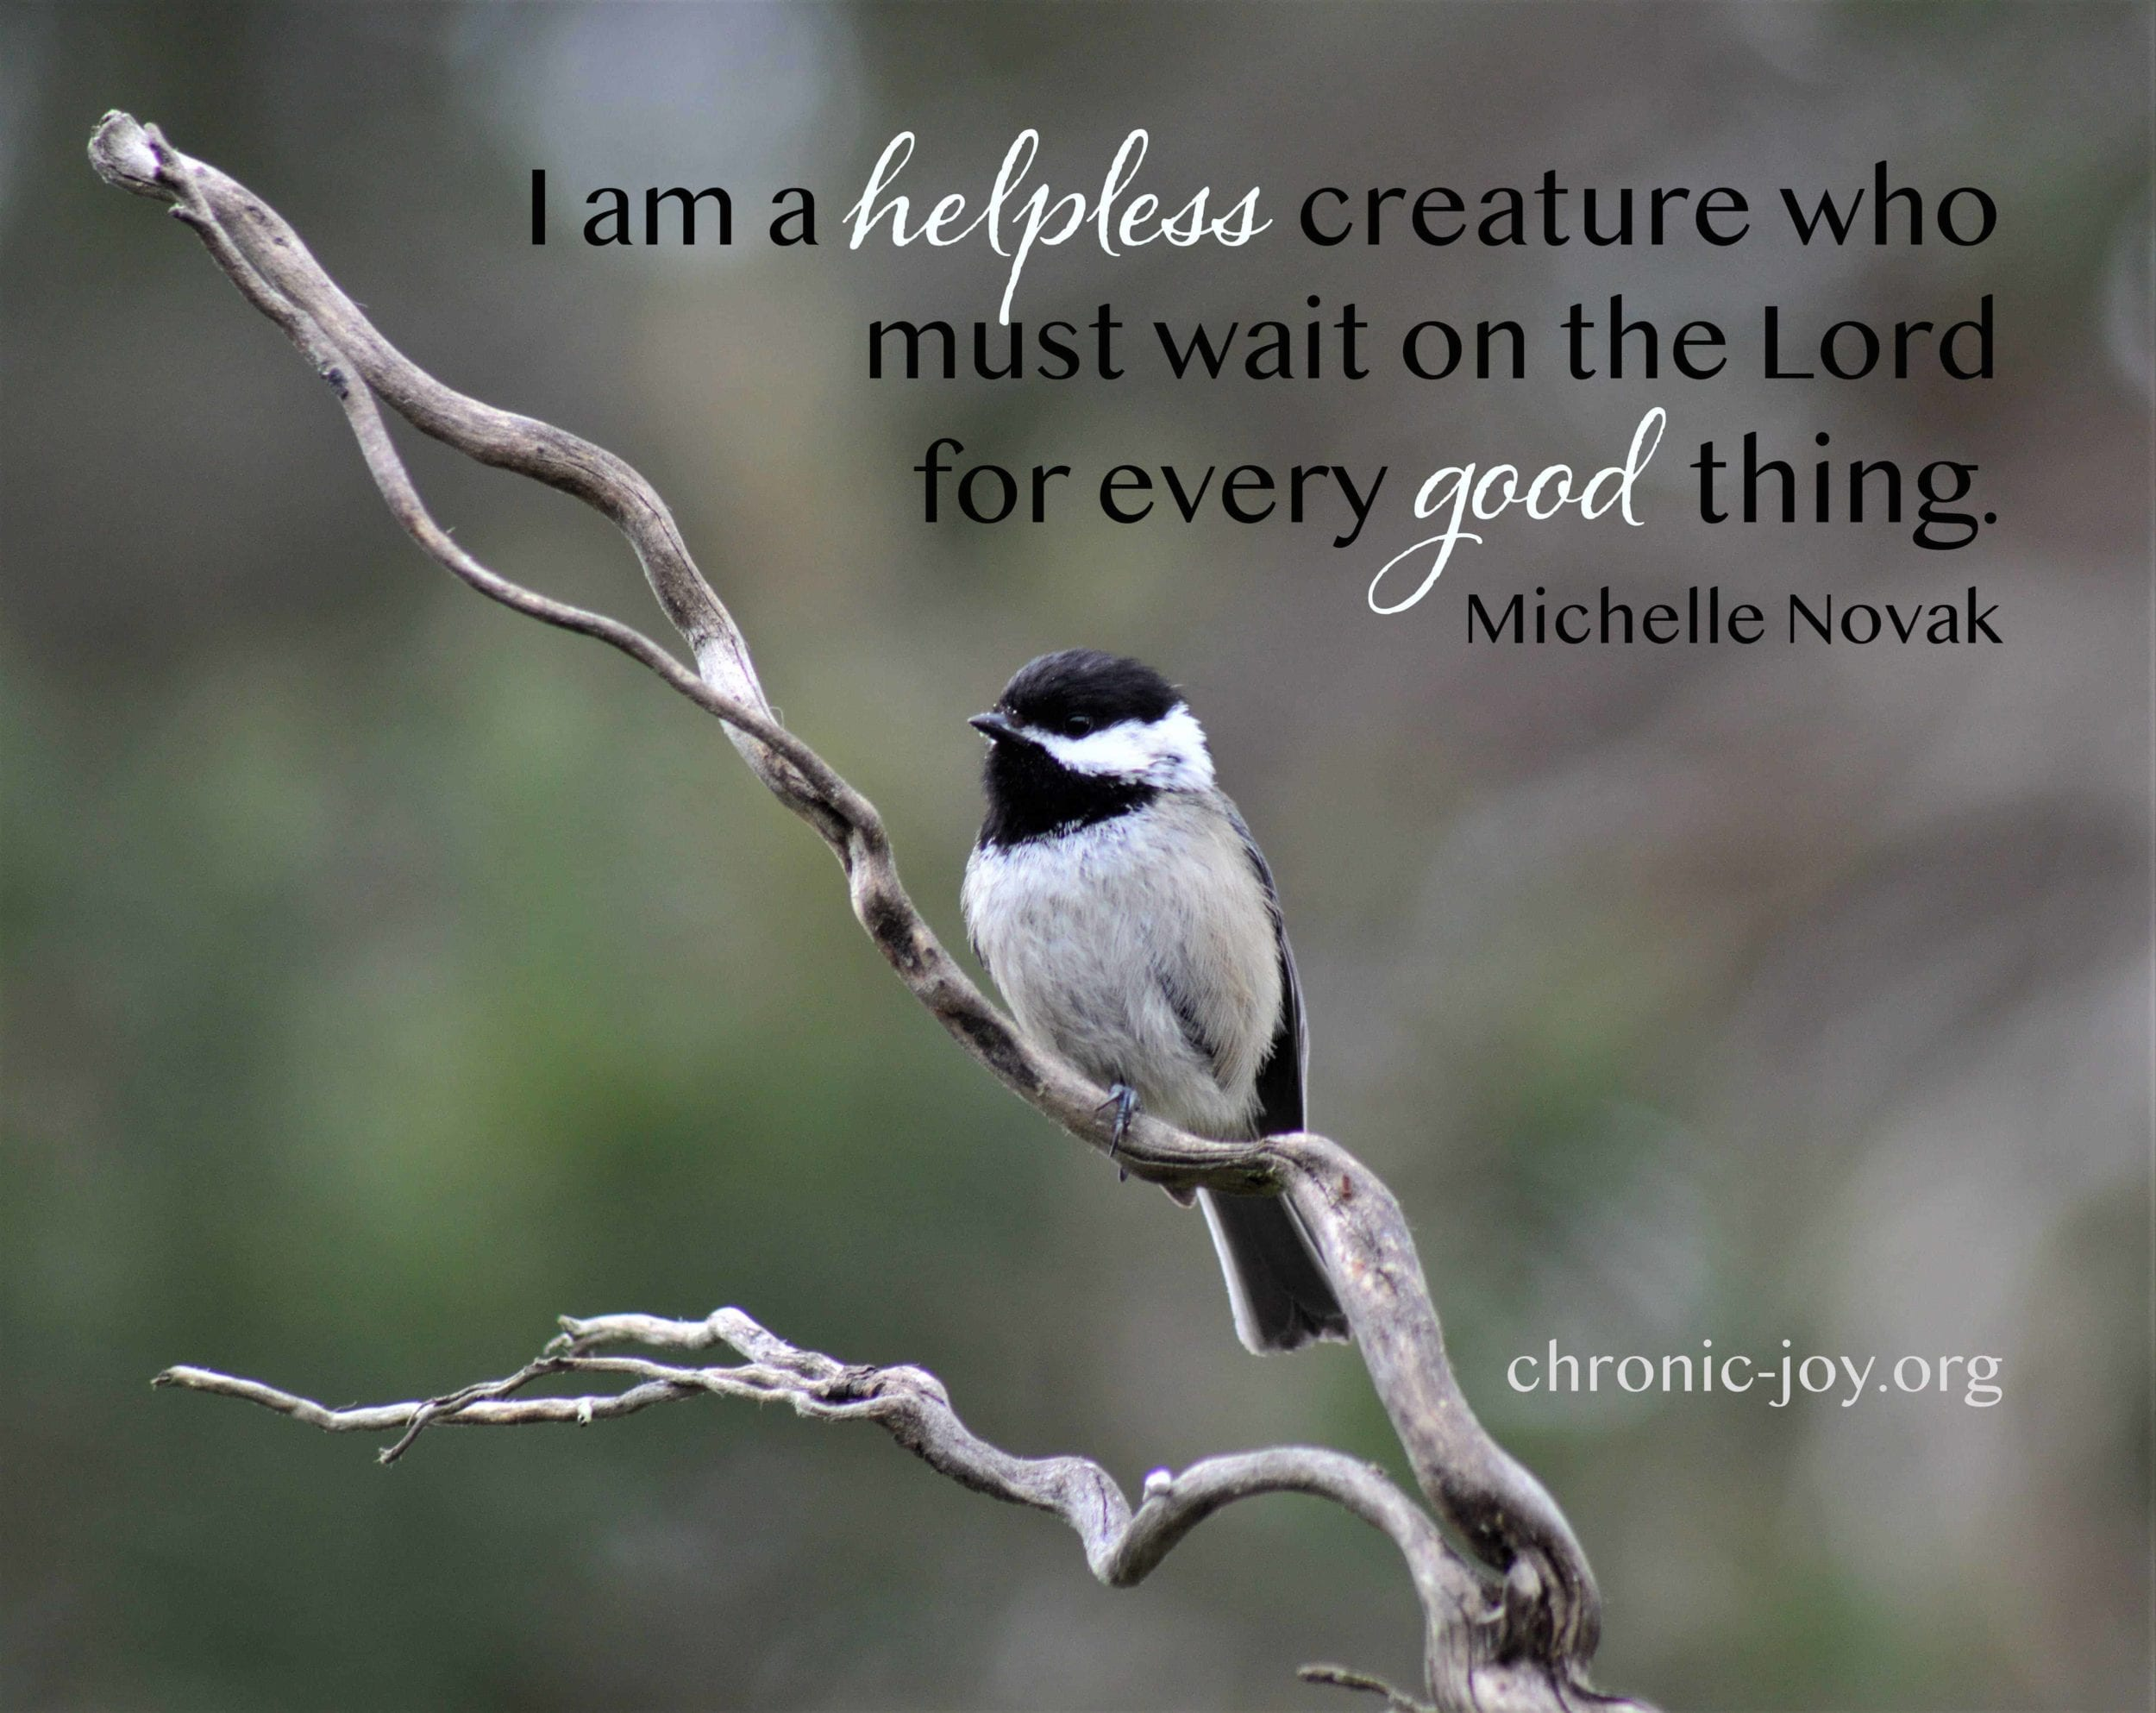 I am a helpless creature who must wait on the Lord for every good thing. Michelle Novak